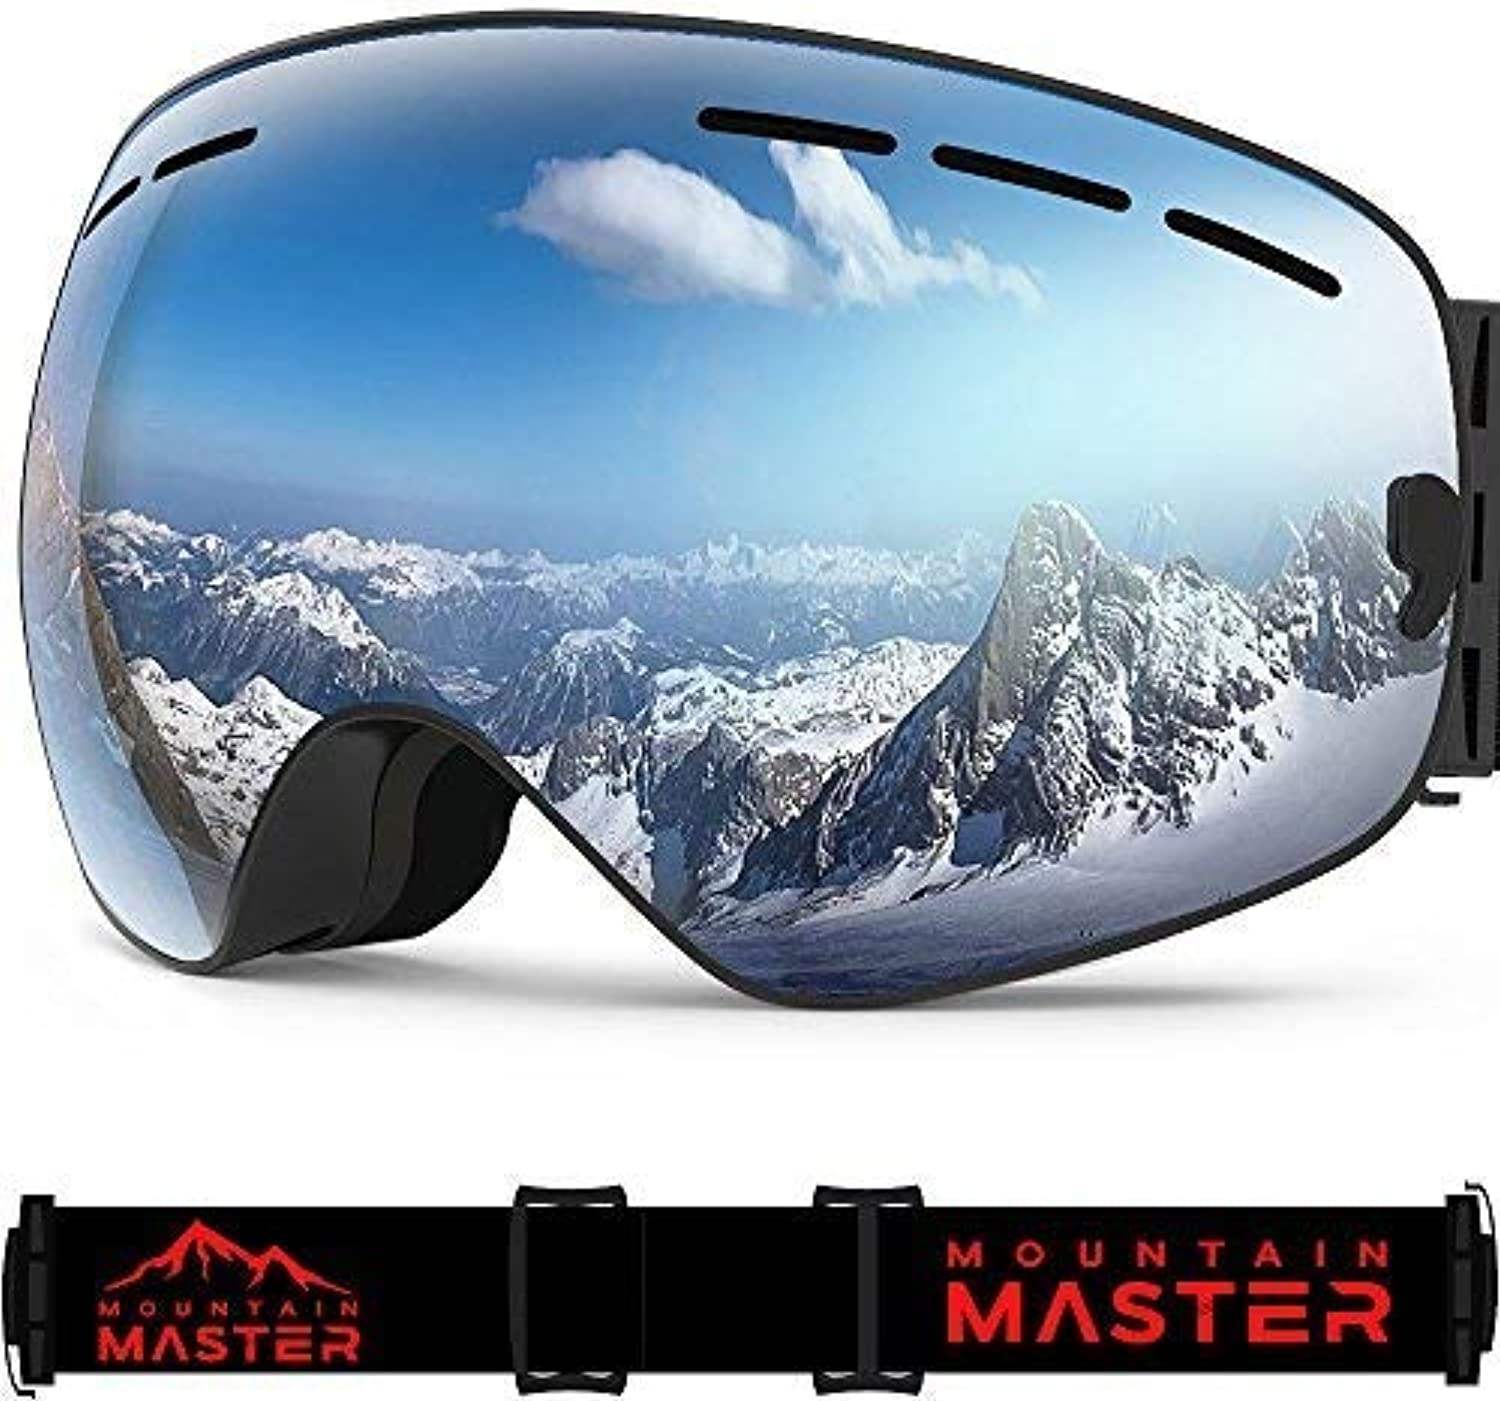 Ski Goggles For Men and Women, Anti-fog UV Predection Spherical REVO Mirror Lens  with Over Glasses OTG For Skiing Goggles and Snowboard By Mountain Master